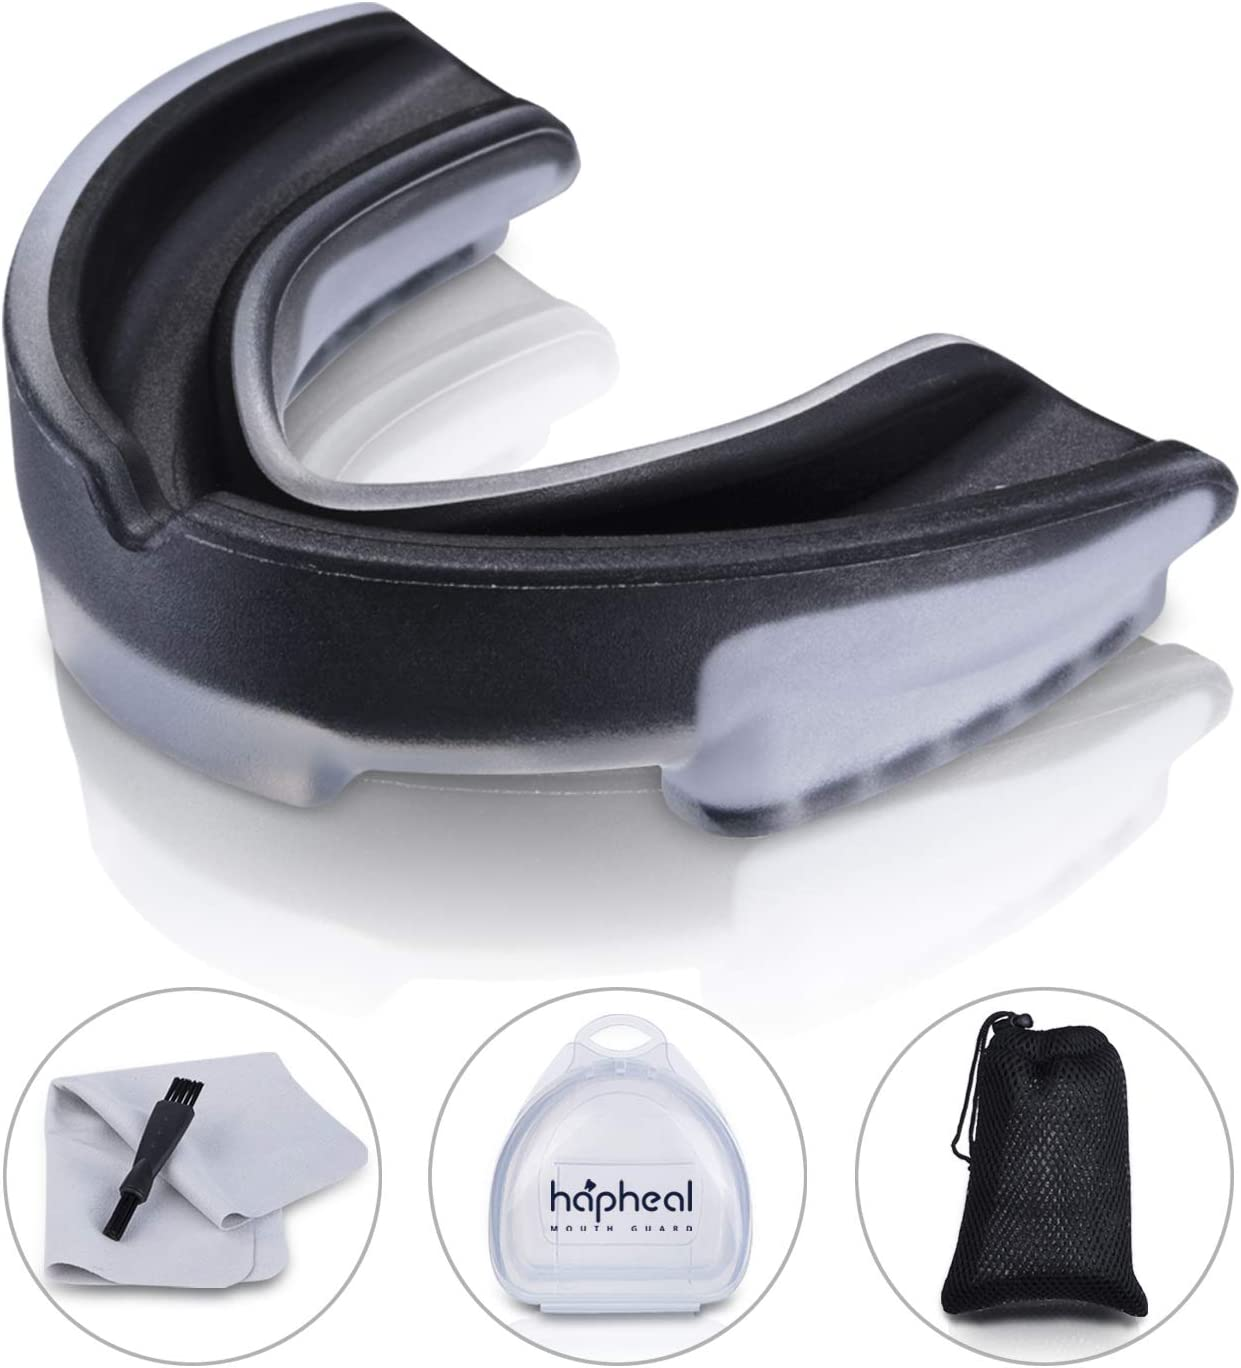 haphealsport 2020 New Mouth Guard Sports,3-Layers Reinforced Mouthguards for Sports, Gum Shield for Boxing,Basketball,Lacrosse